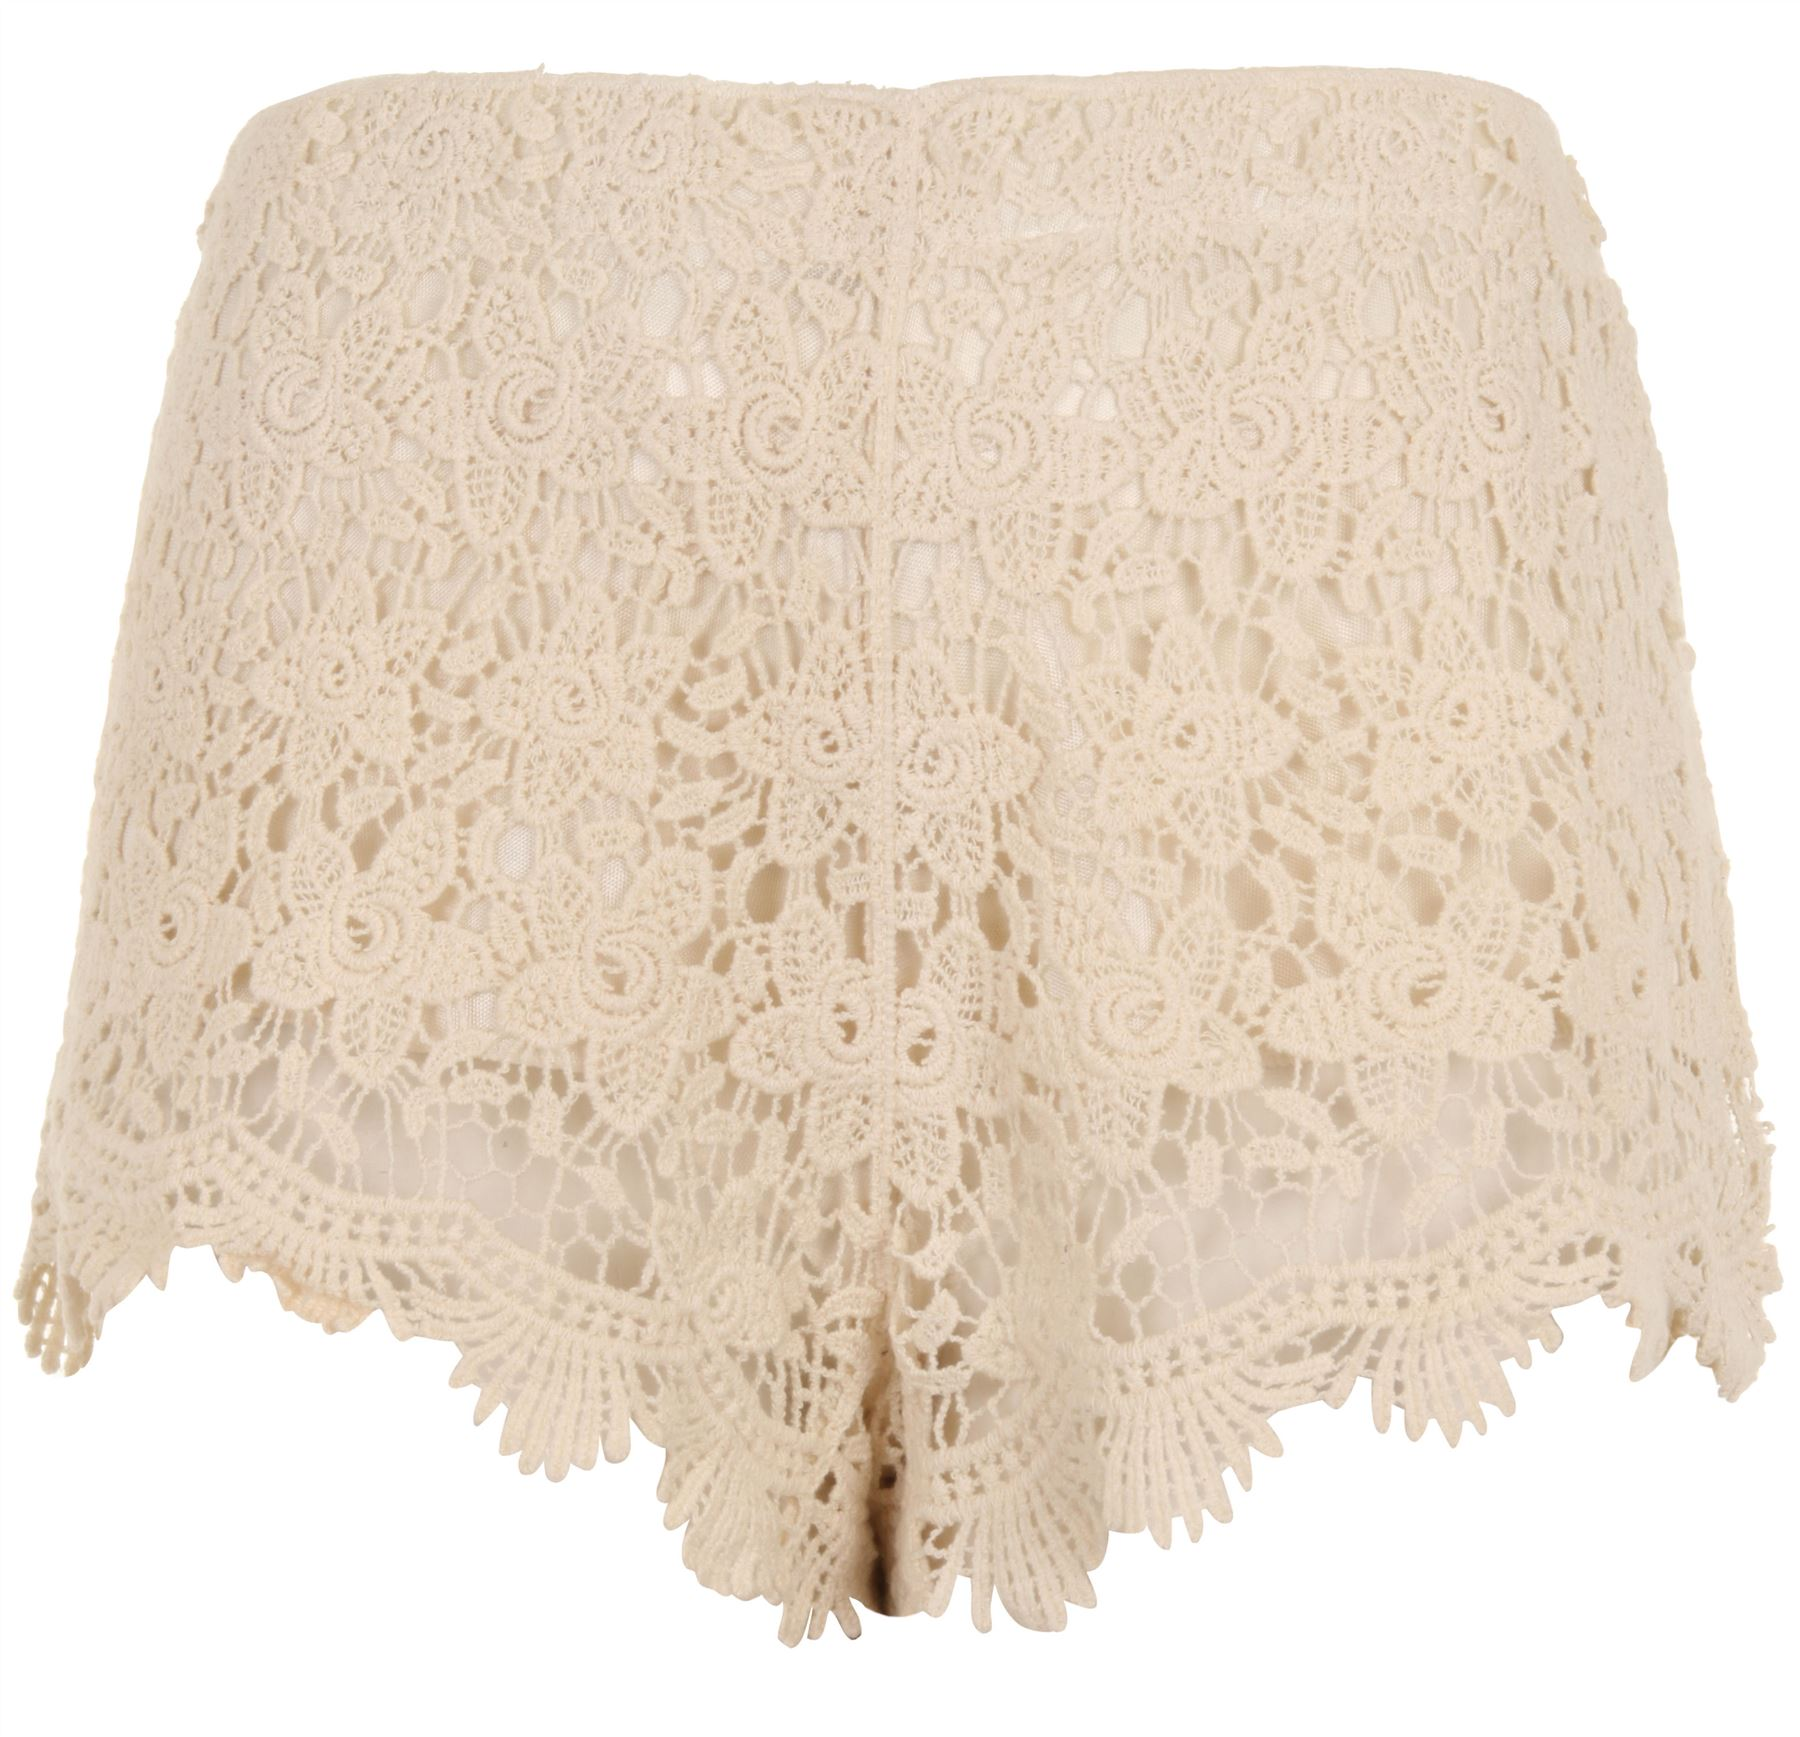 Pretty-Ladies-Floral-Cotton-Crochet-Shorts-with-Elastic-Waistband-Cream